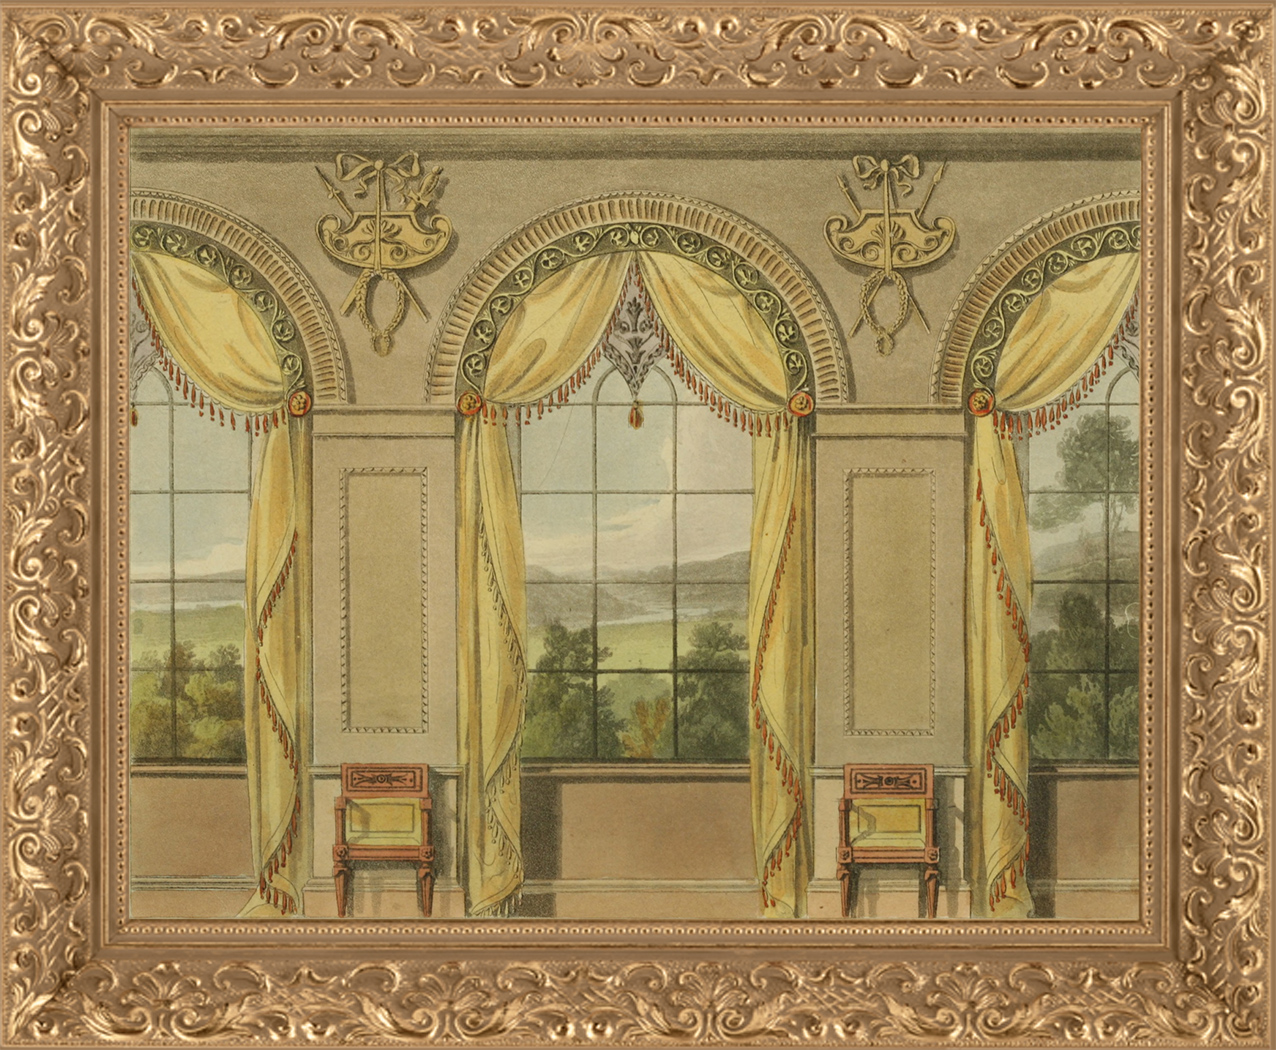 1816 Ackermanns Repository Furniture Plate Showing Curtained Windows